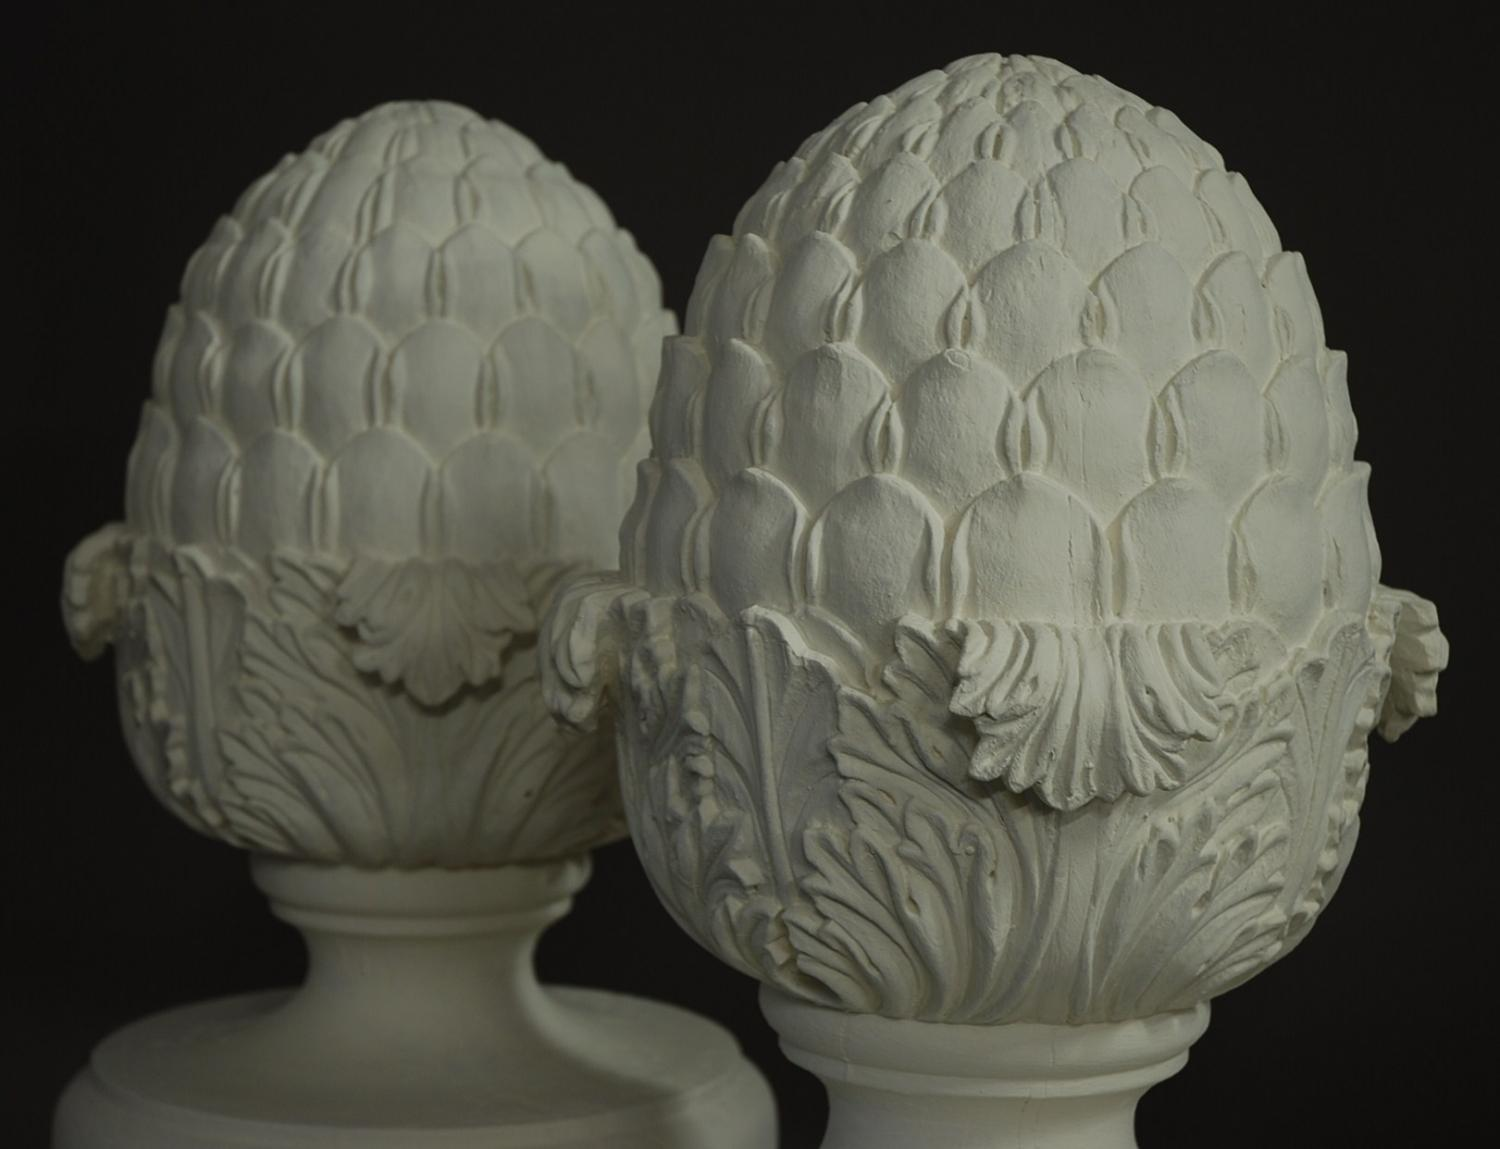 Favorite Set of 6 decorative wooden pineapple finials in SOLD ARCHIVE GJ64